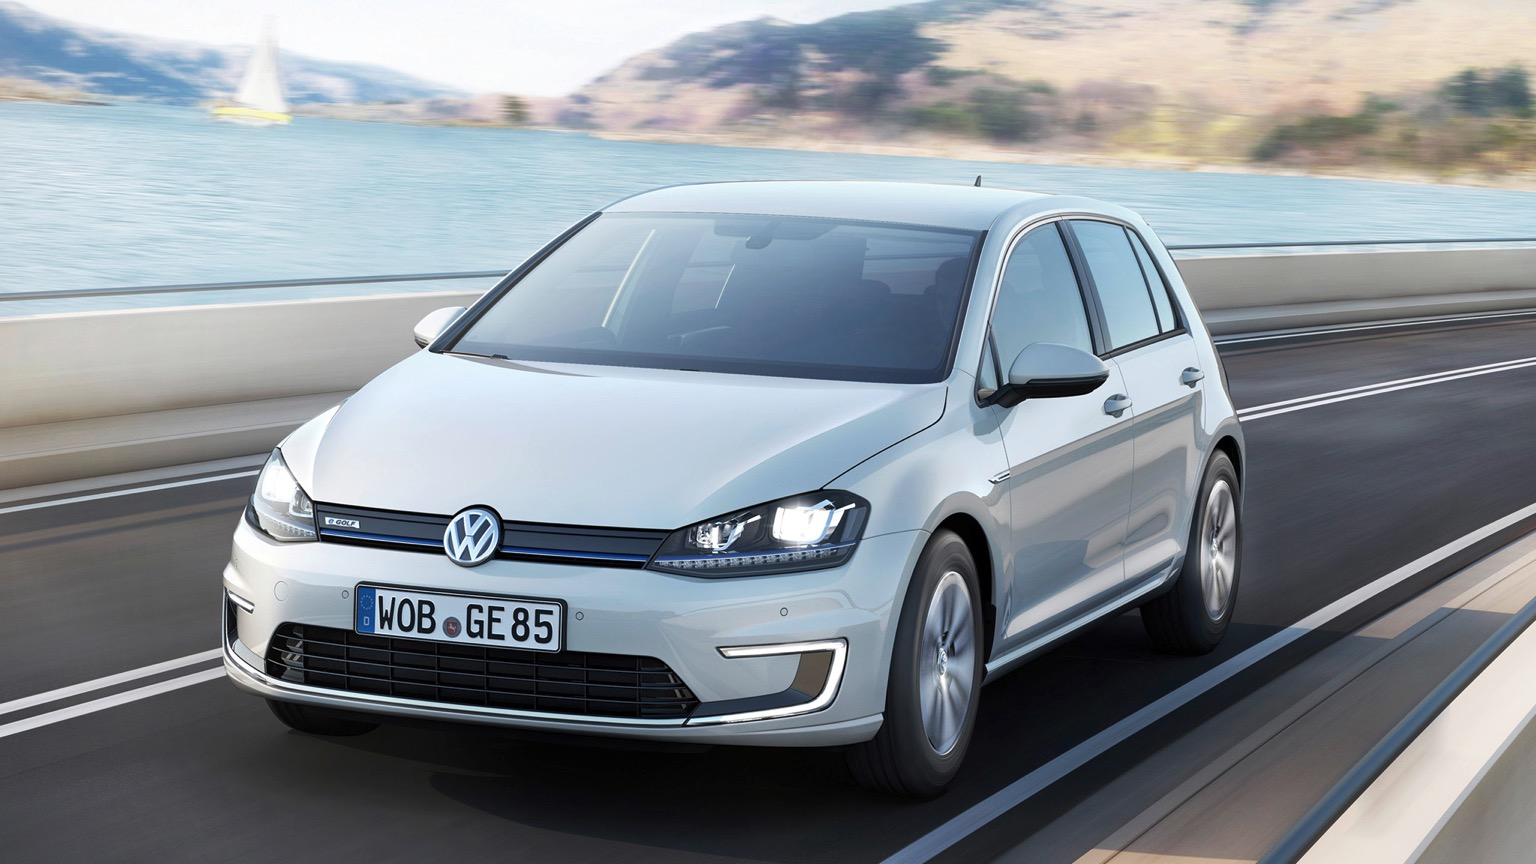 Volkswagen e-Golf (2014)